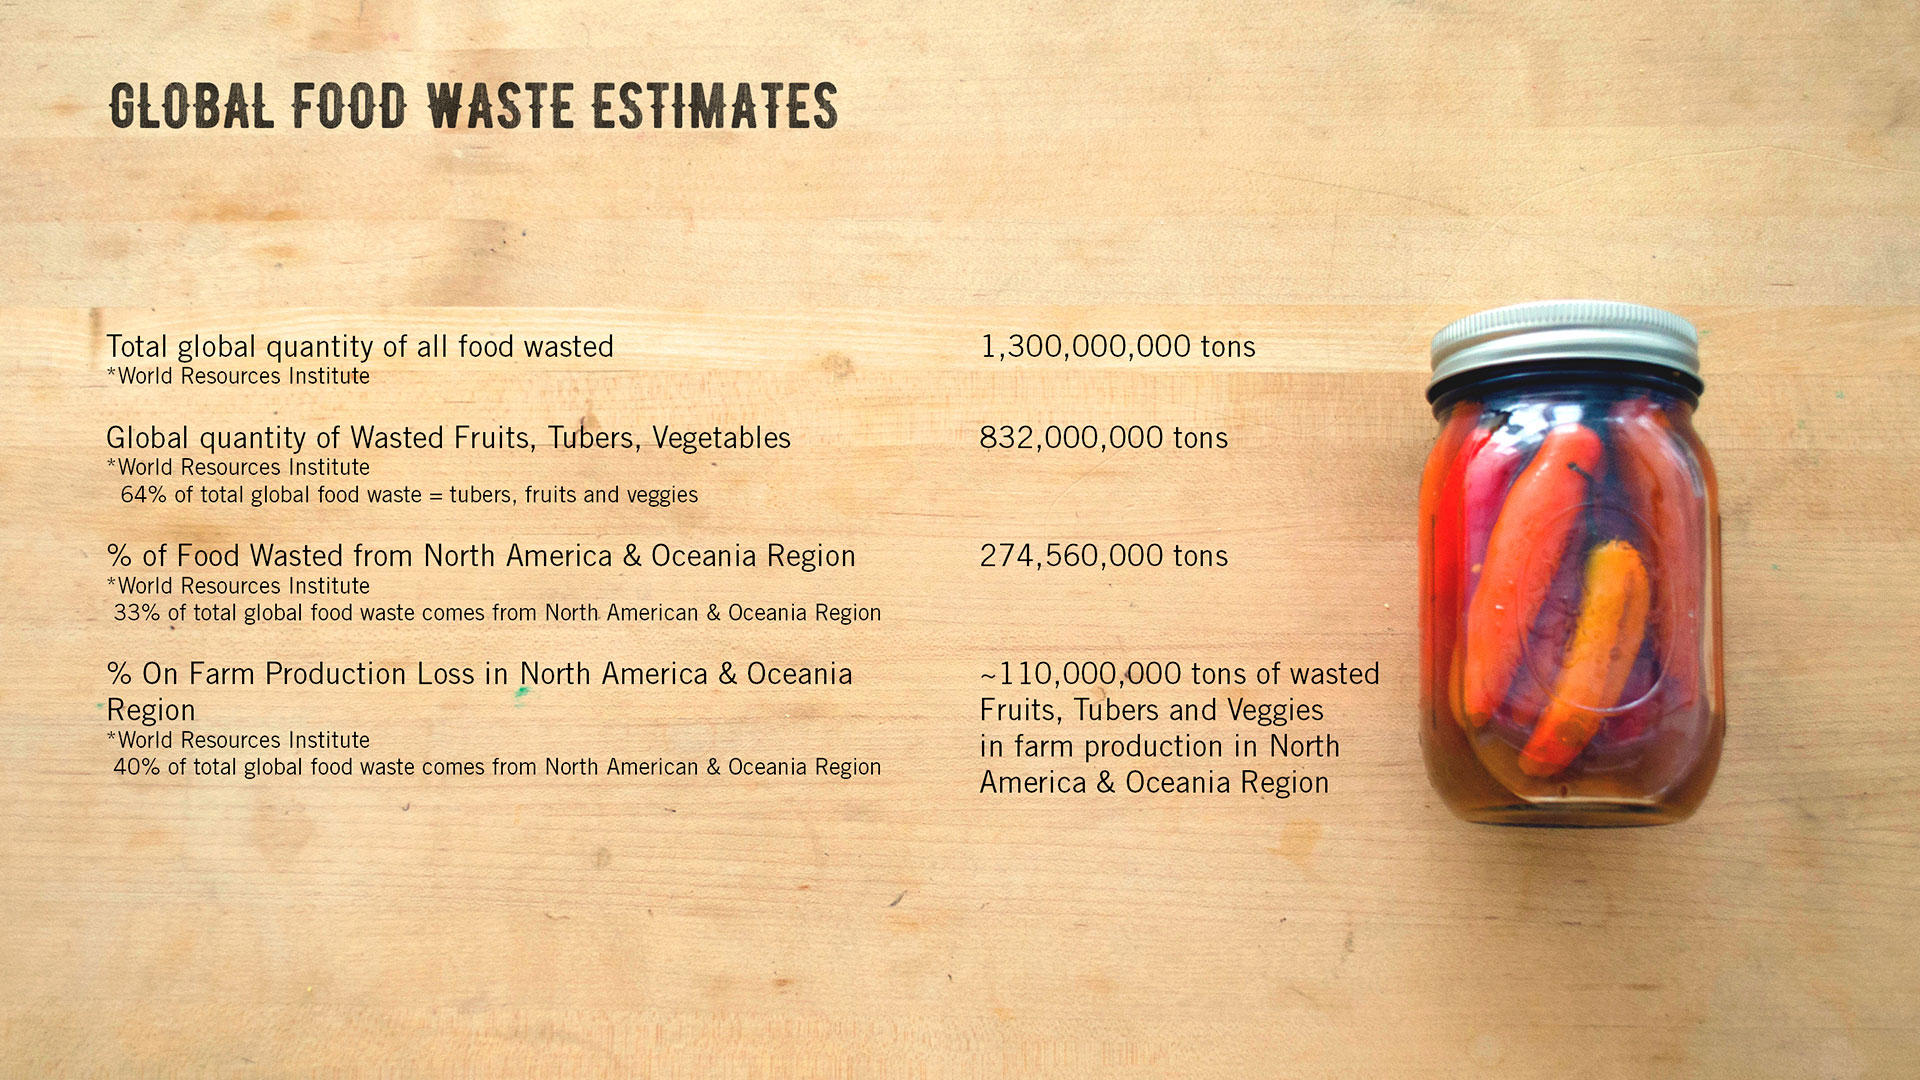 11-Farm-waste-estimates.jpg